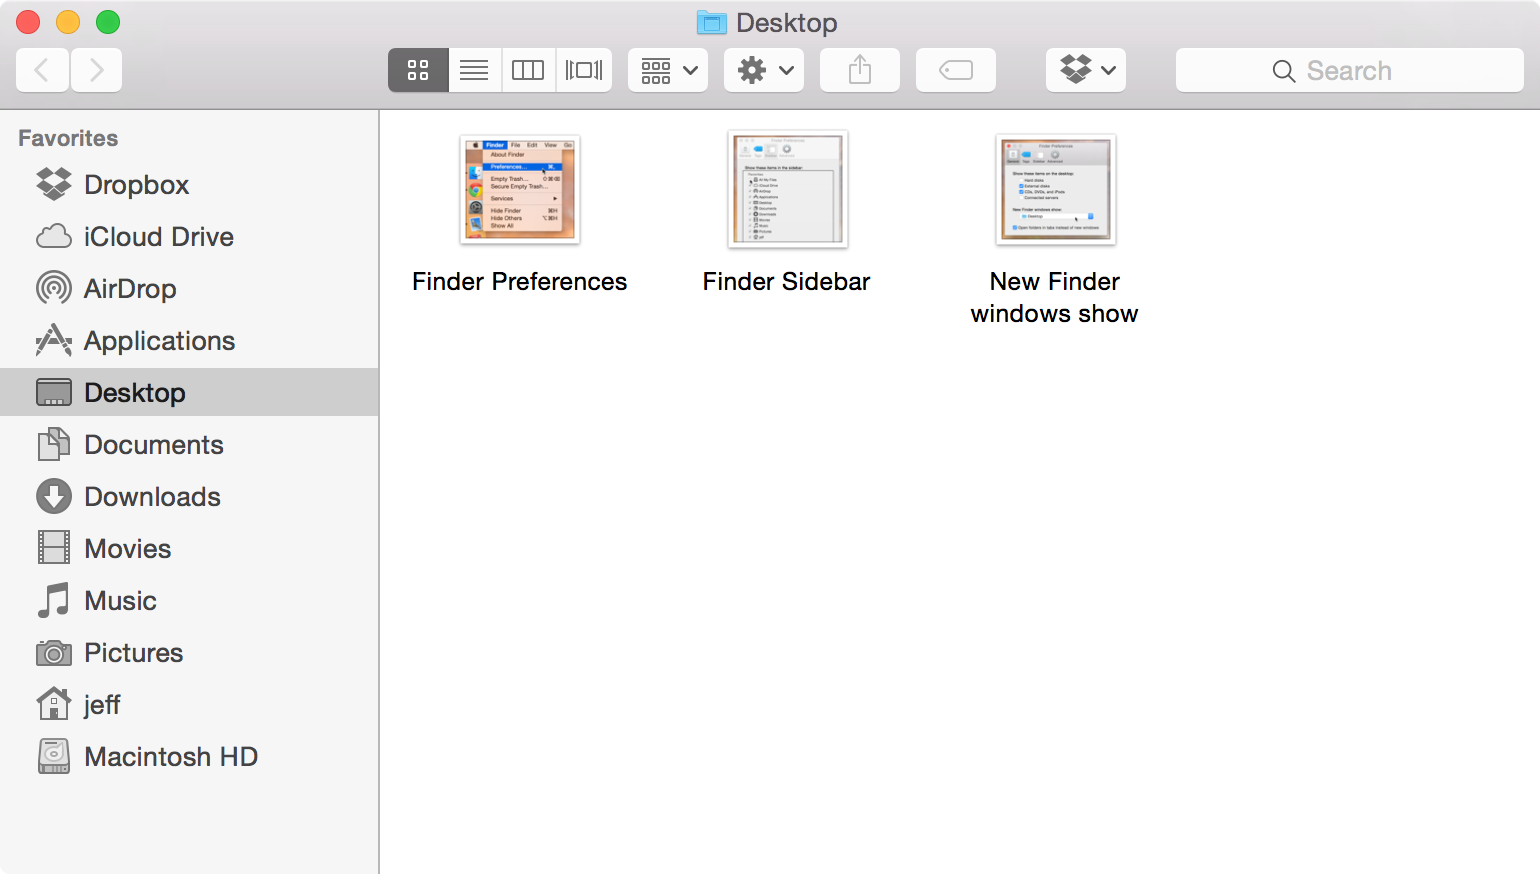 Set desktop as default folder in Finder